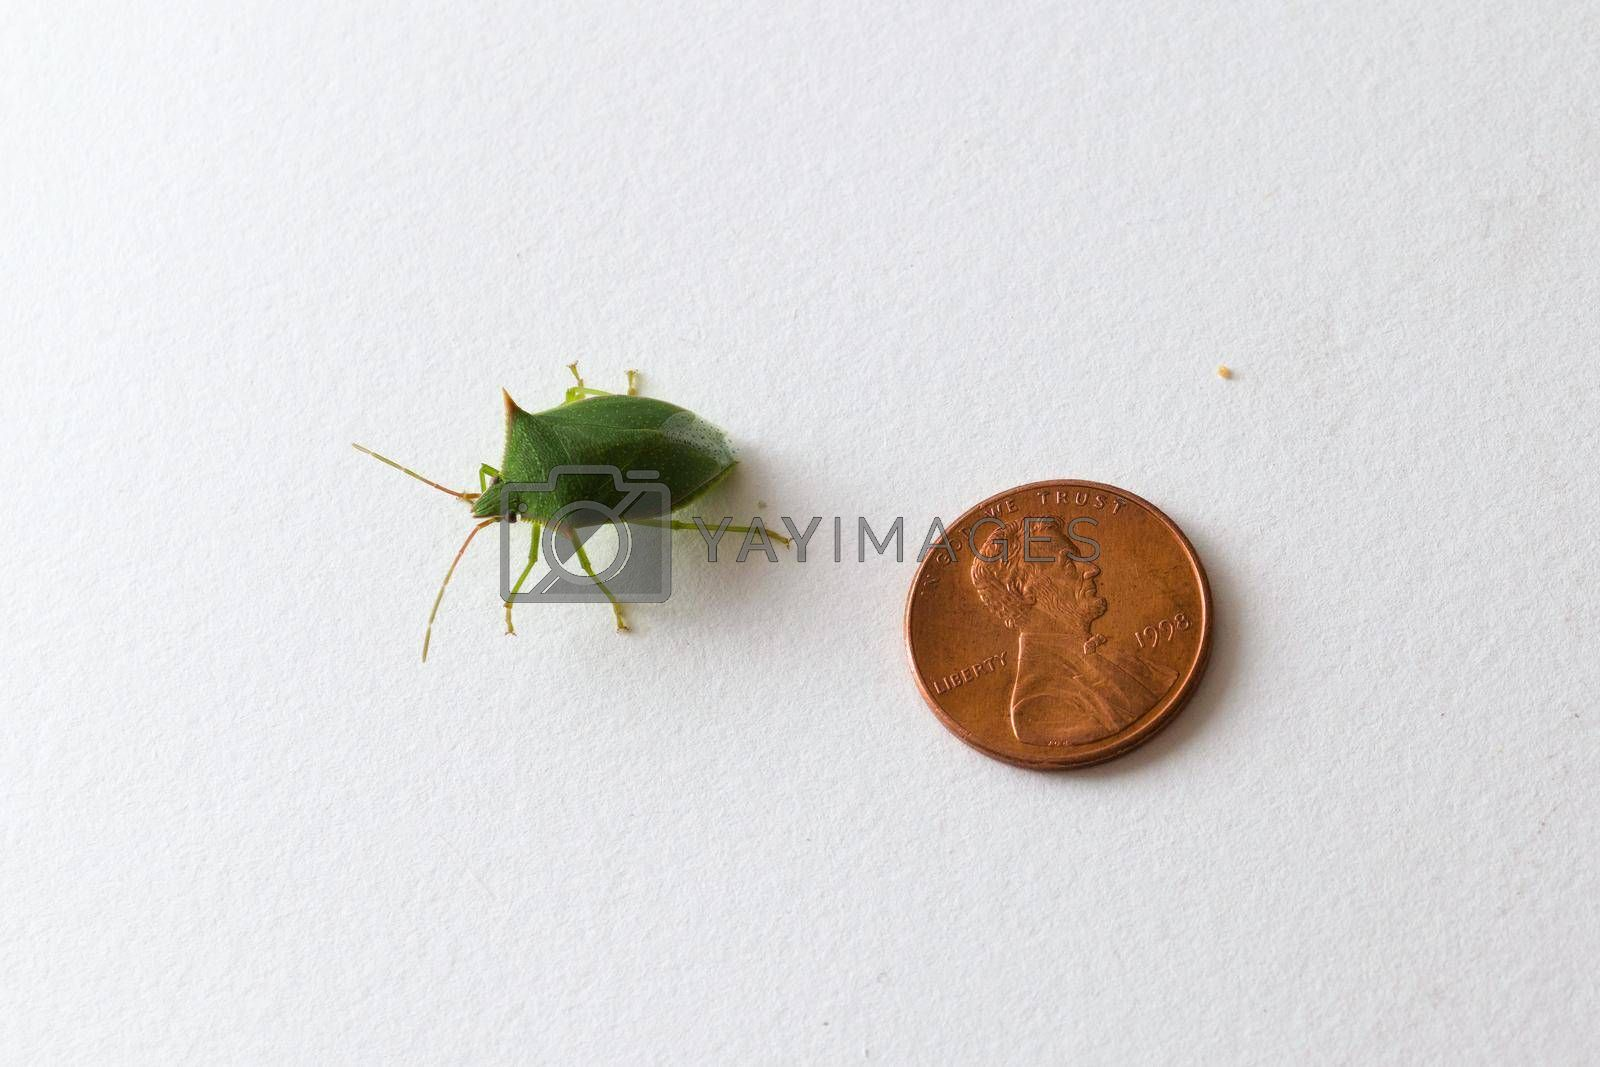 Royalty free image of Green stink bug (Nezara Viridula) next to a US dollar cent coin for scale. by hernan_hyper